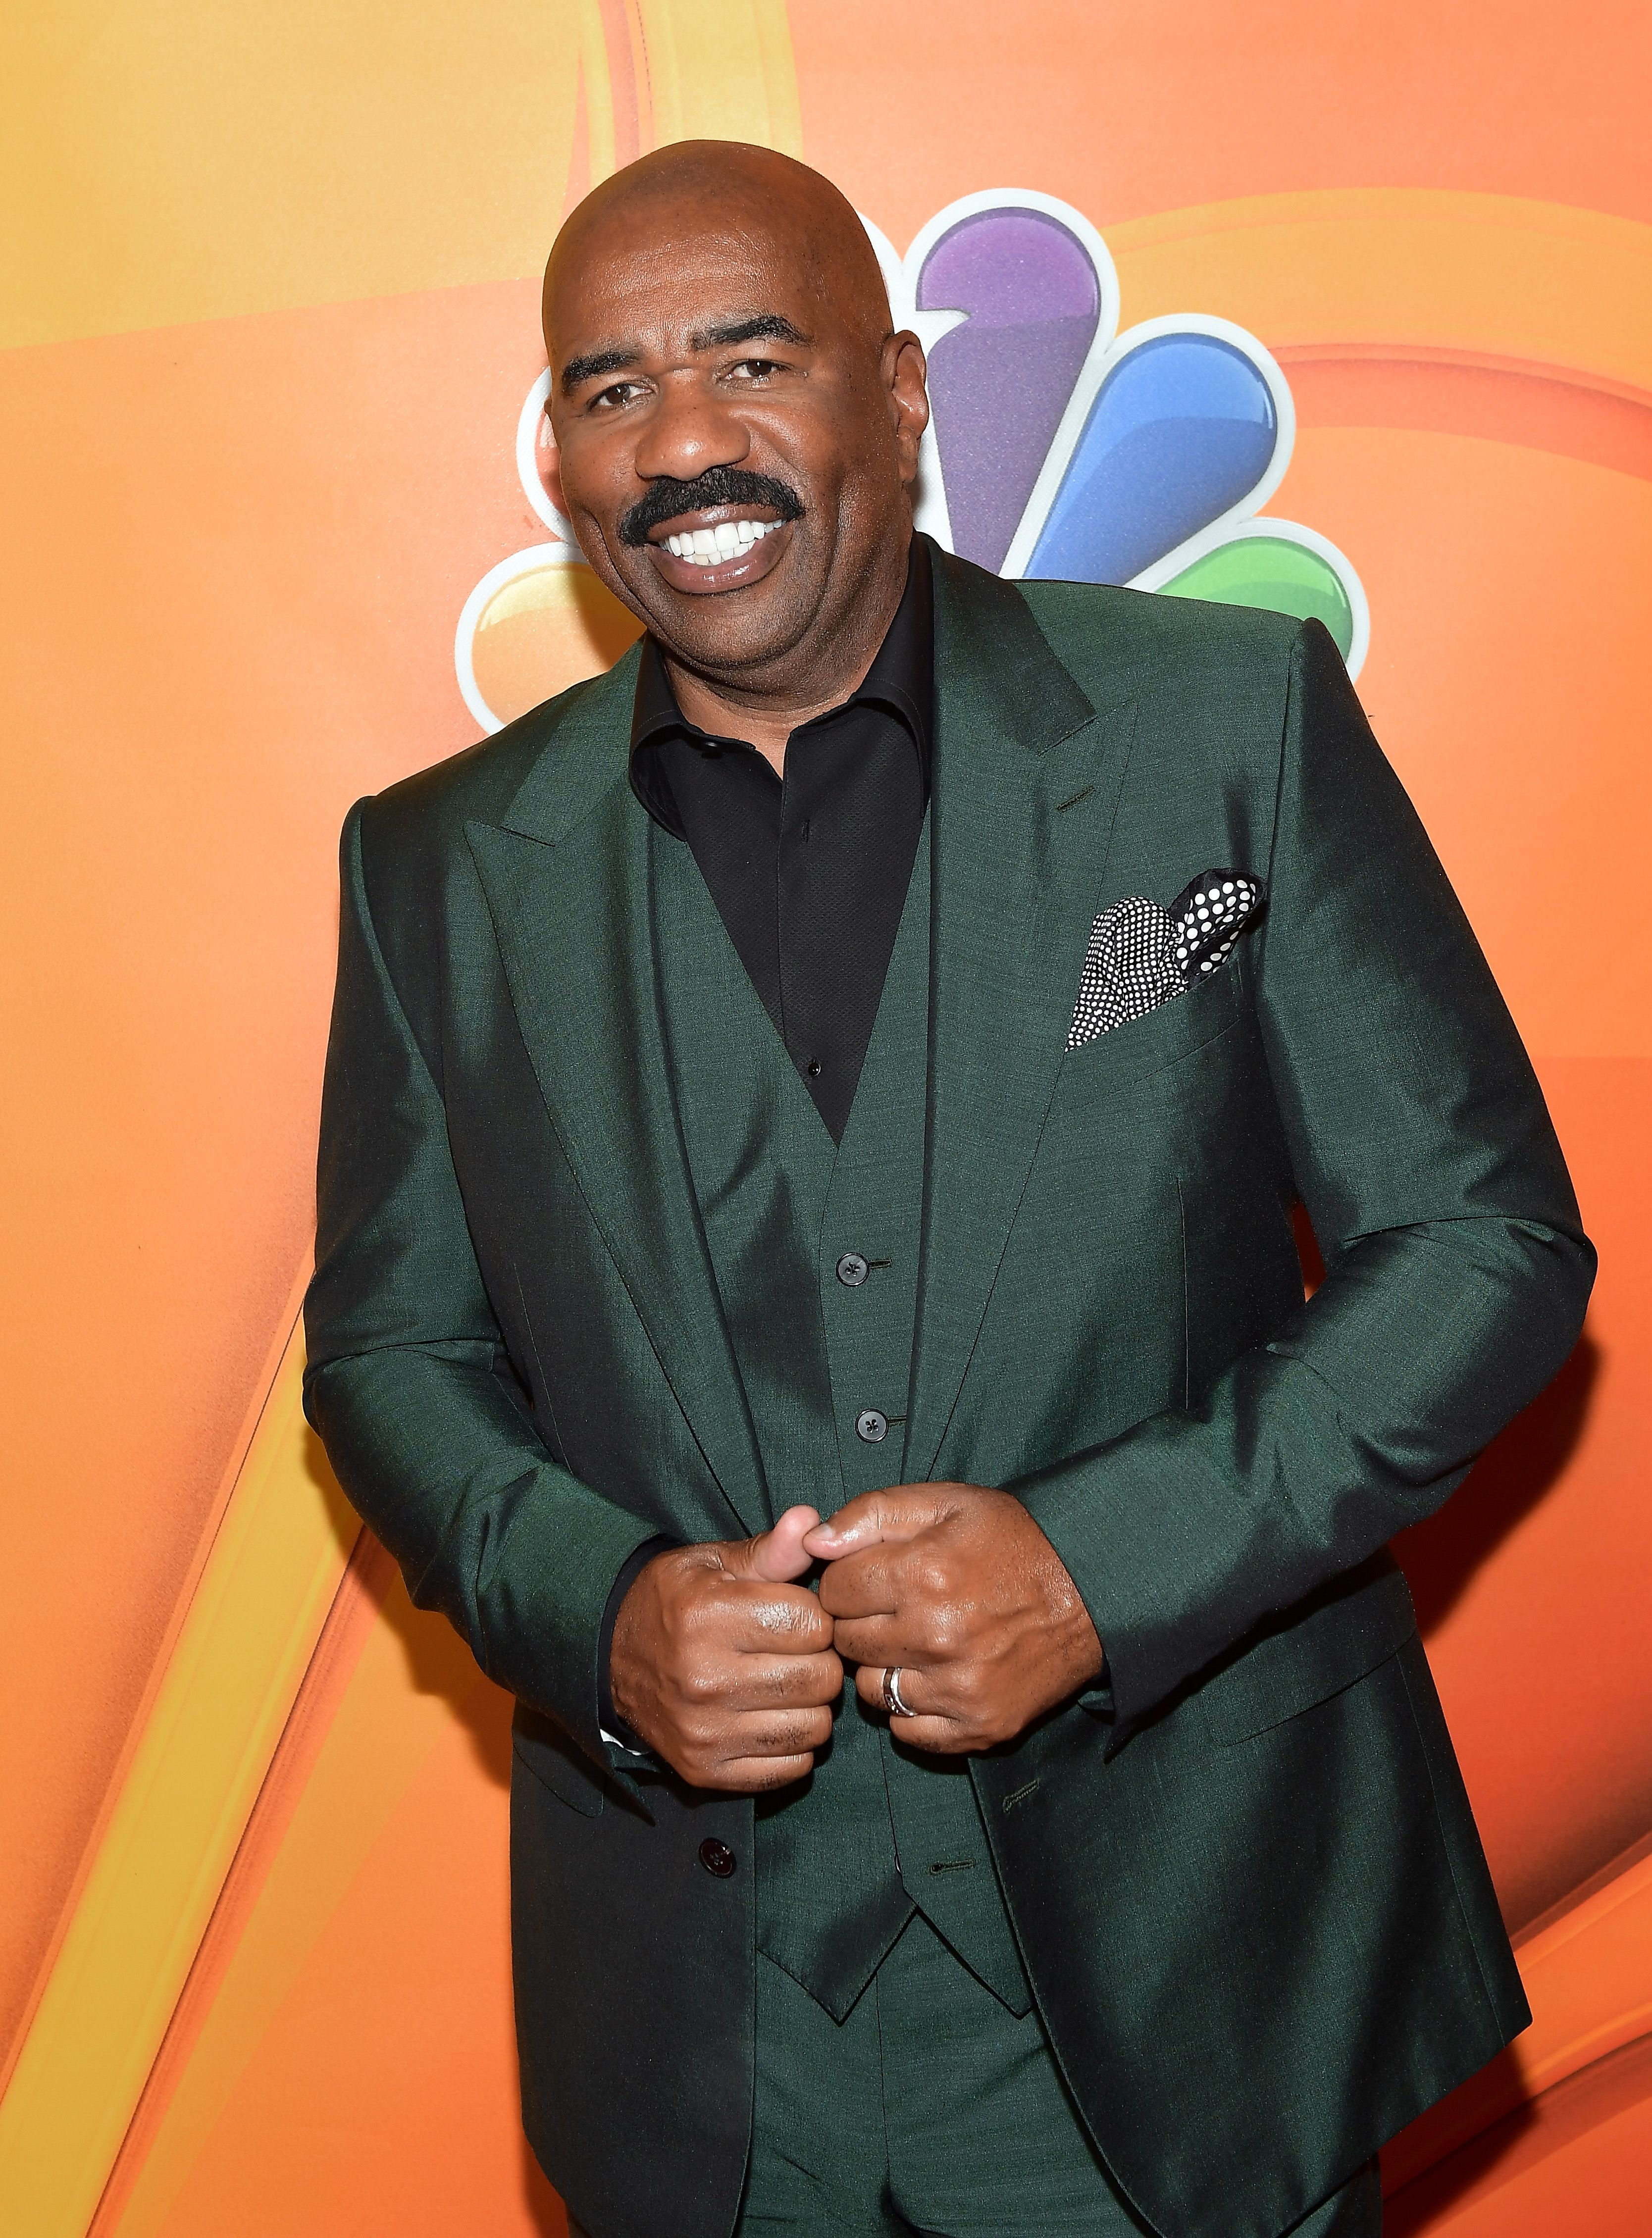 Steve Harvey at the NBCUniversal Summer TCA Press Tour in August 2017. | Photo: Getty Images